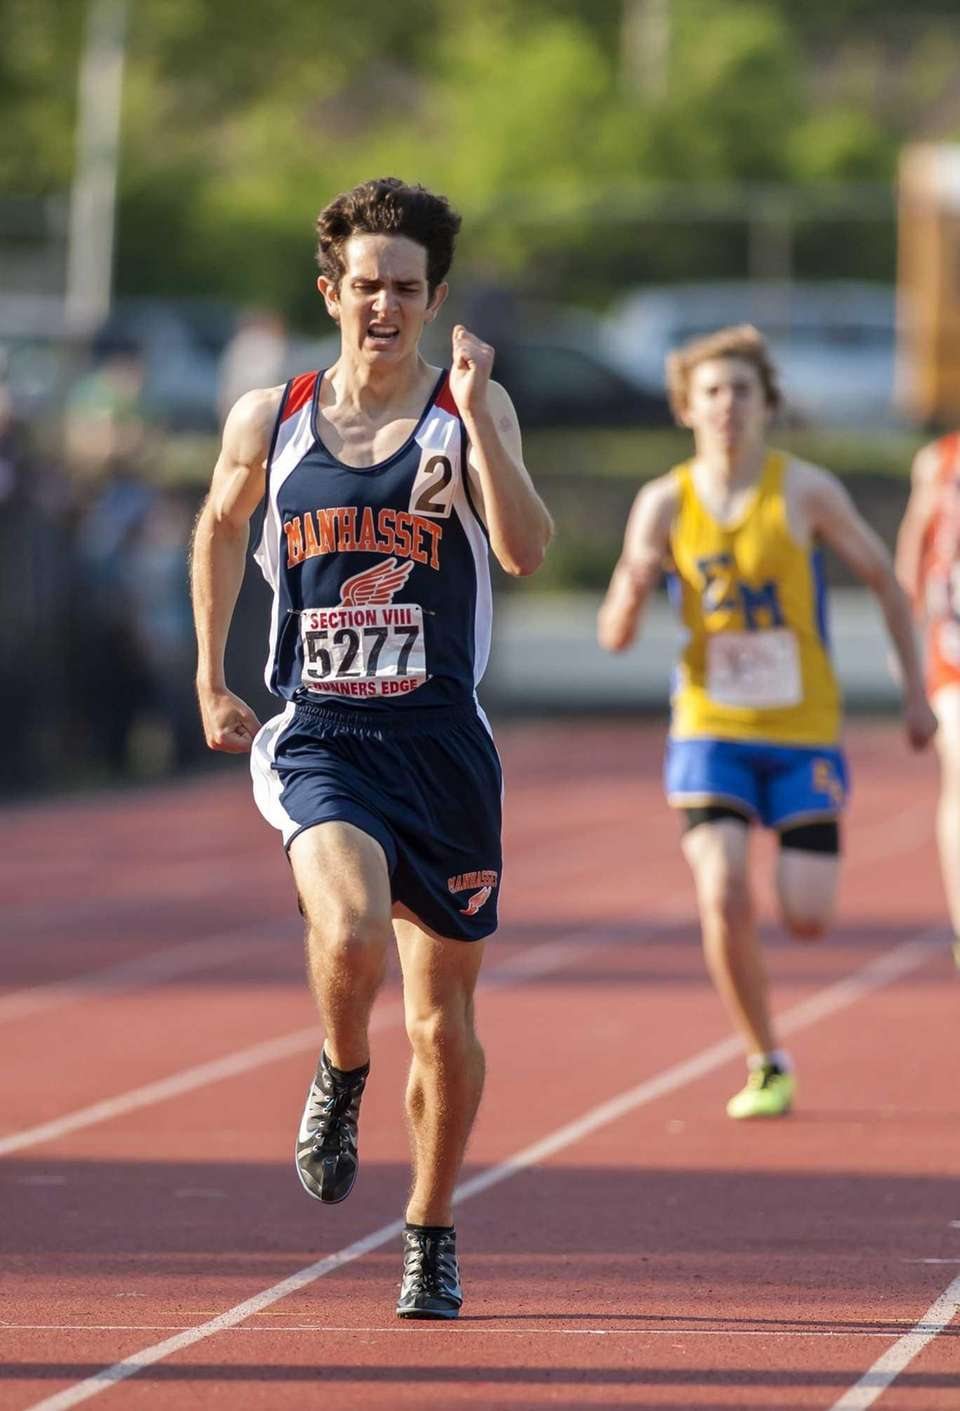 Manhasset's Stephen Bourguet wins the boys 1600 meter